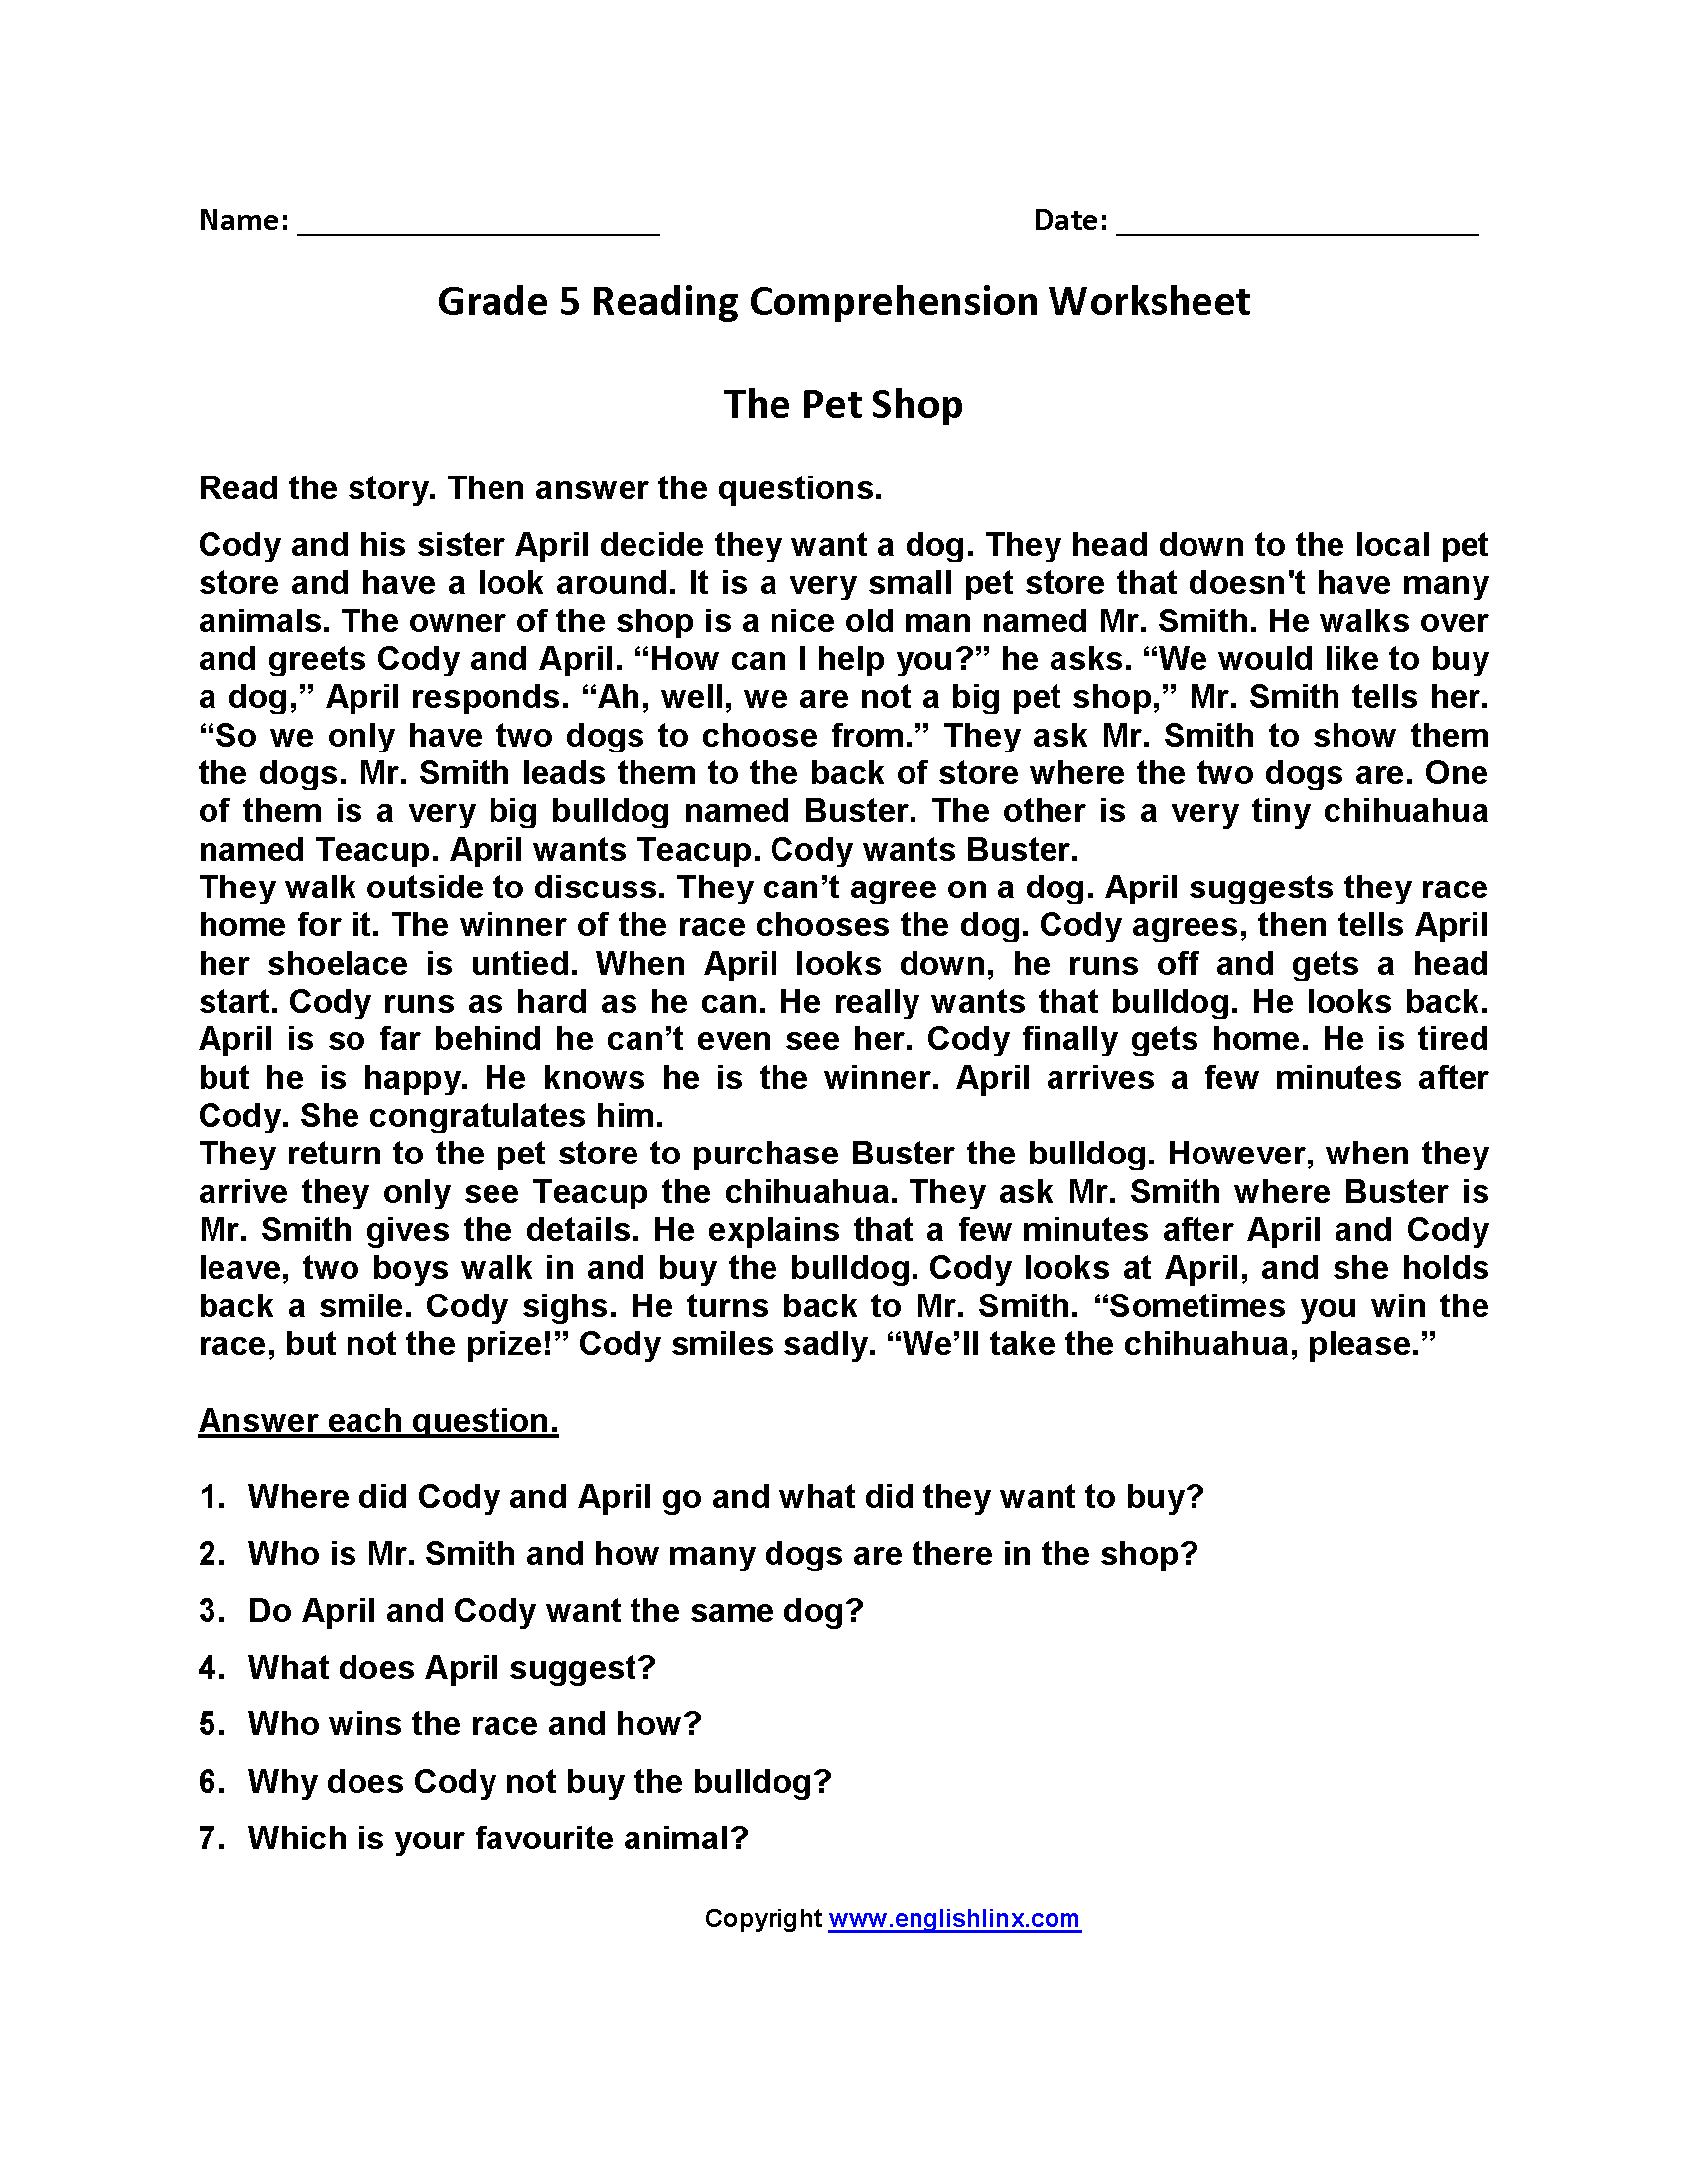 The Pet Shop Fifth Grade Reading Worksheets With Images